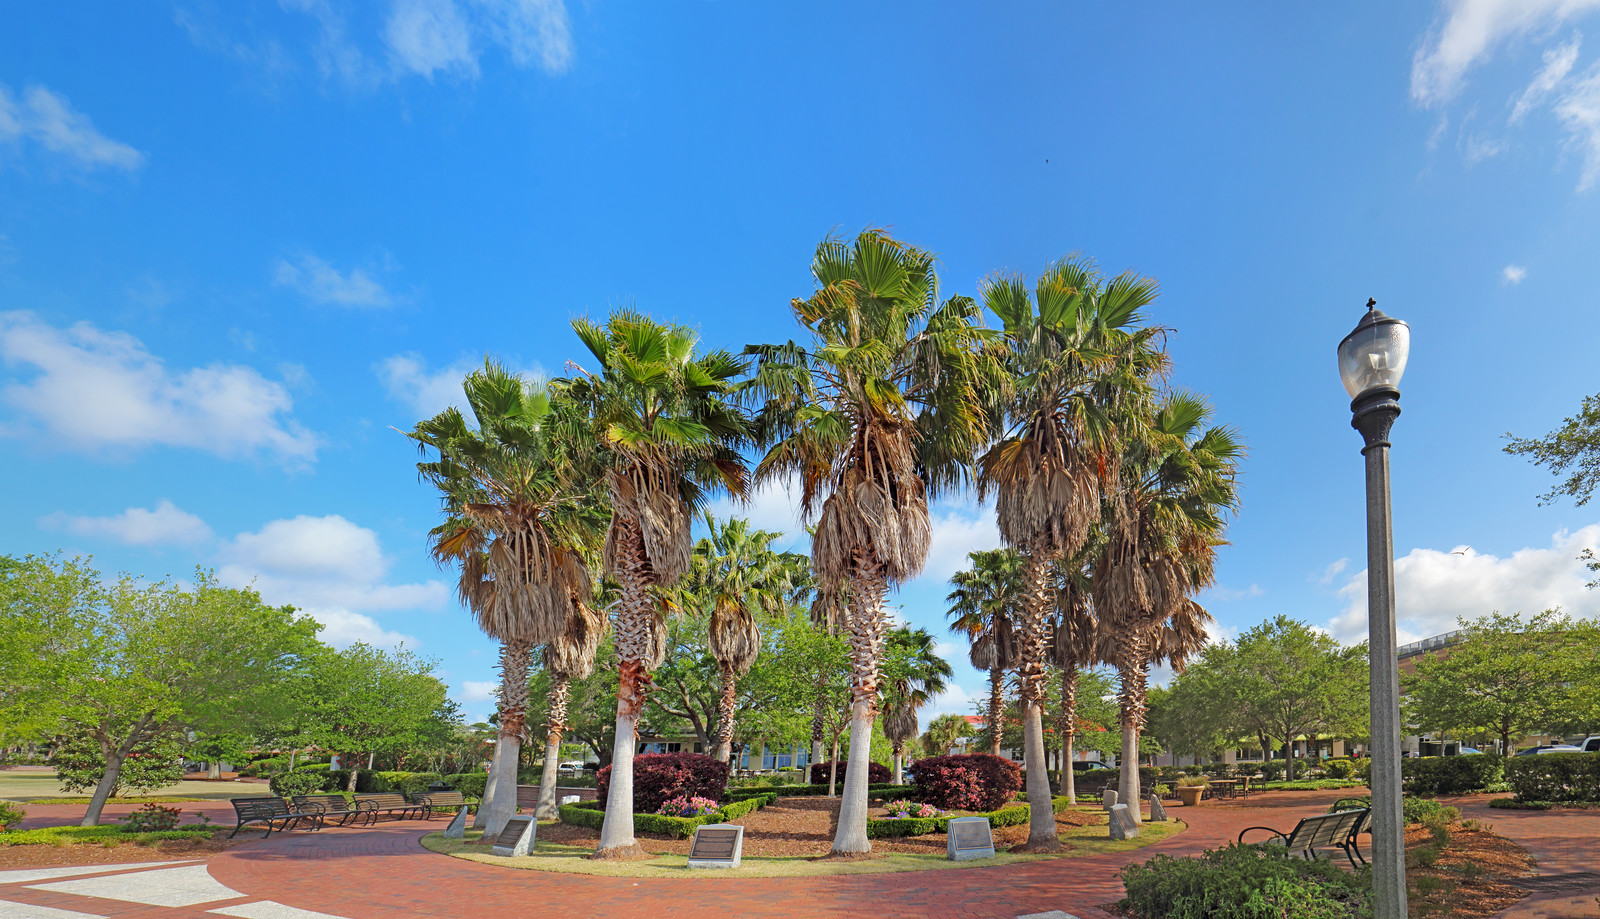 Circle of Sabal palmetto trees in the Henry c. chambers waterfront park off of bay street in downtown Beaufort, south Carolina